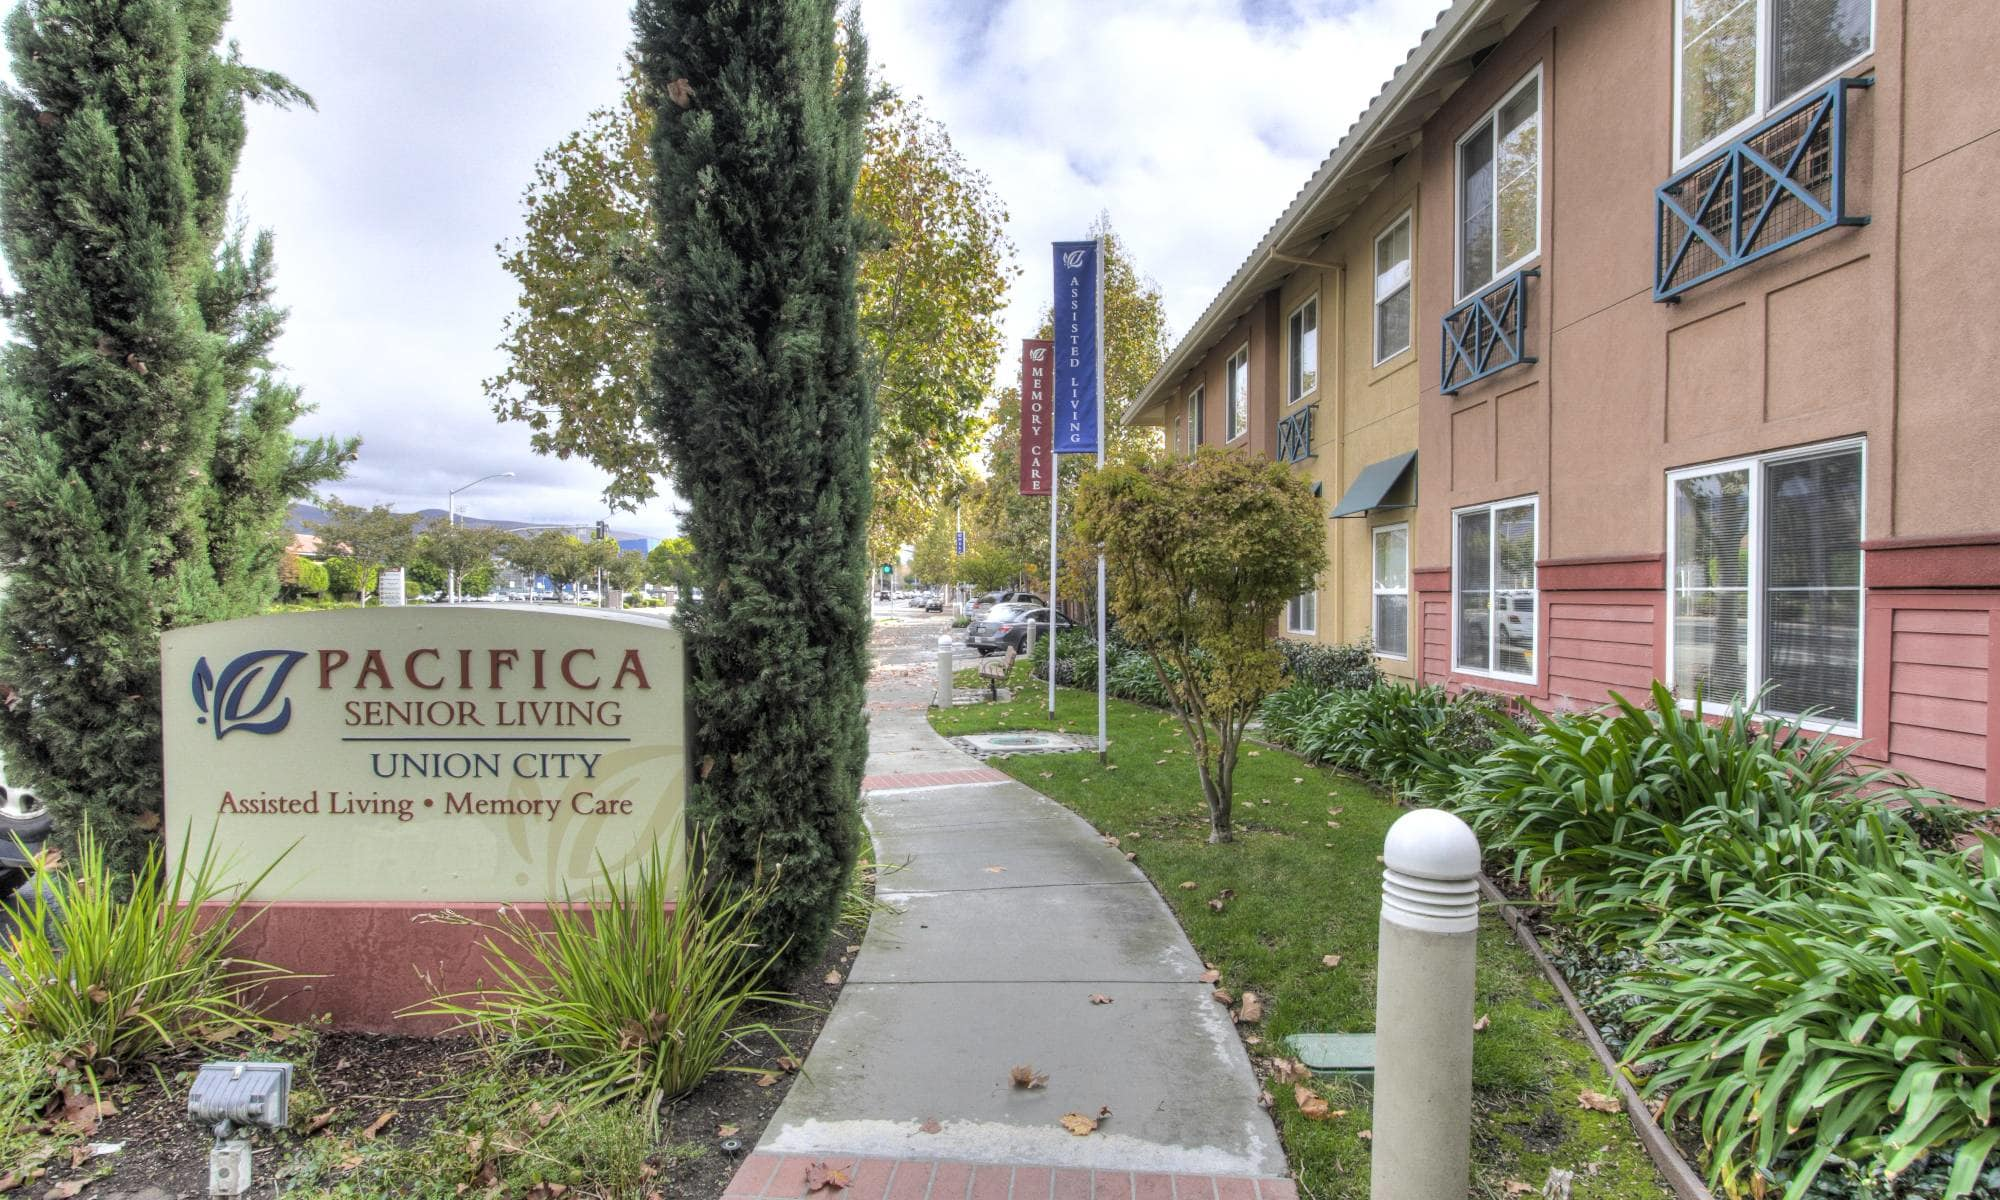 Main sign of Pacifica Senior Living Union City